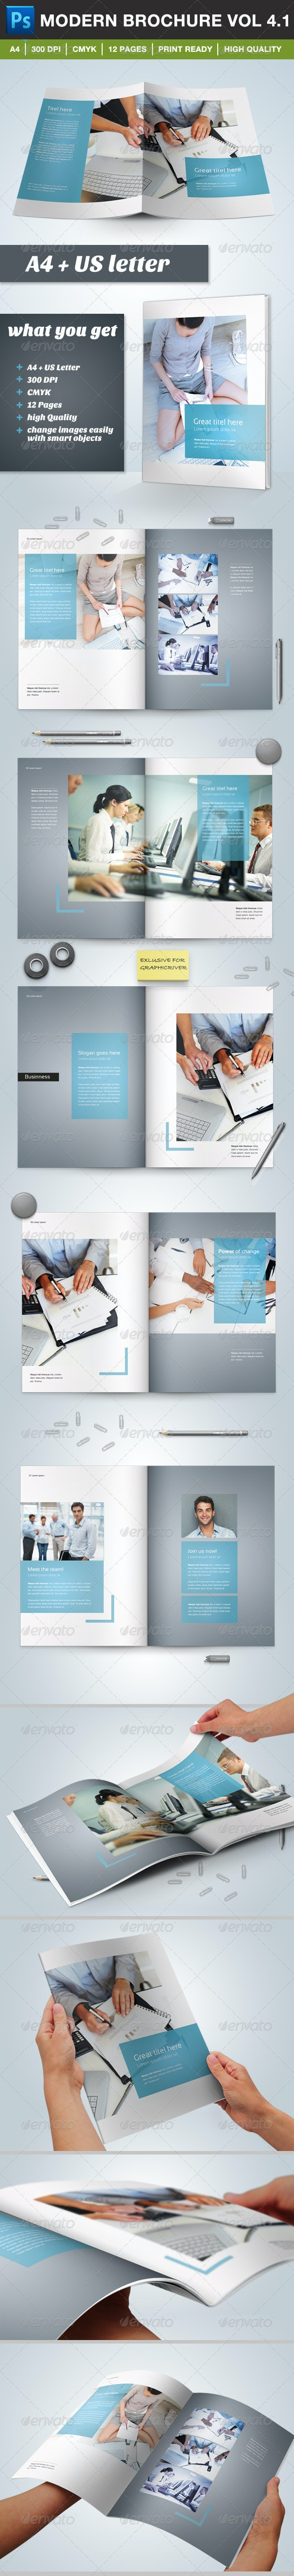 Modern Brochure Vol. 4.1 (12 pages) - Brochures Print Templates